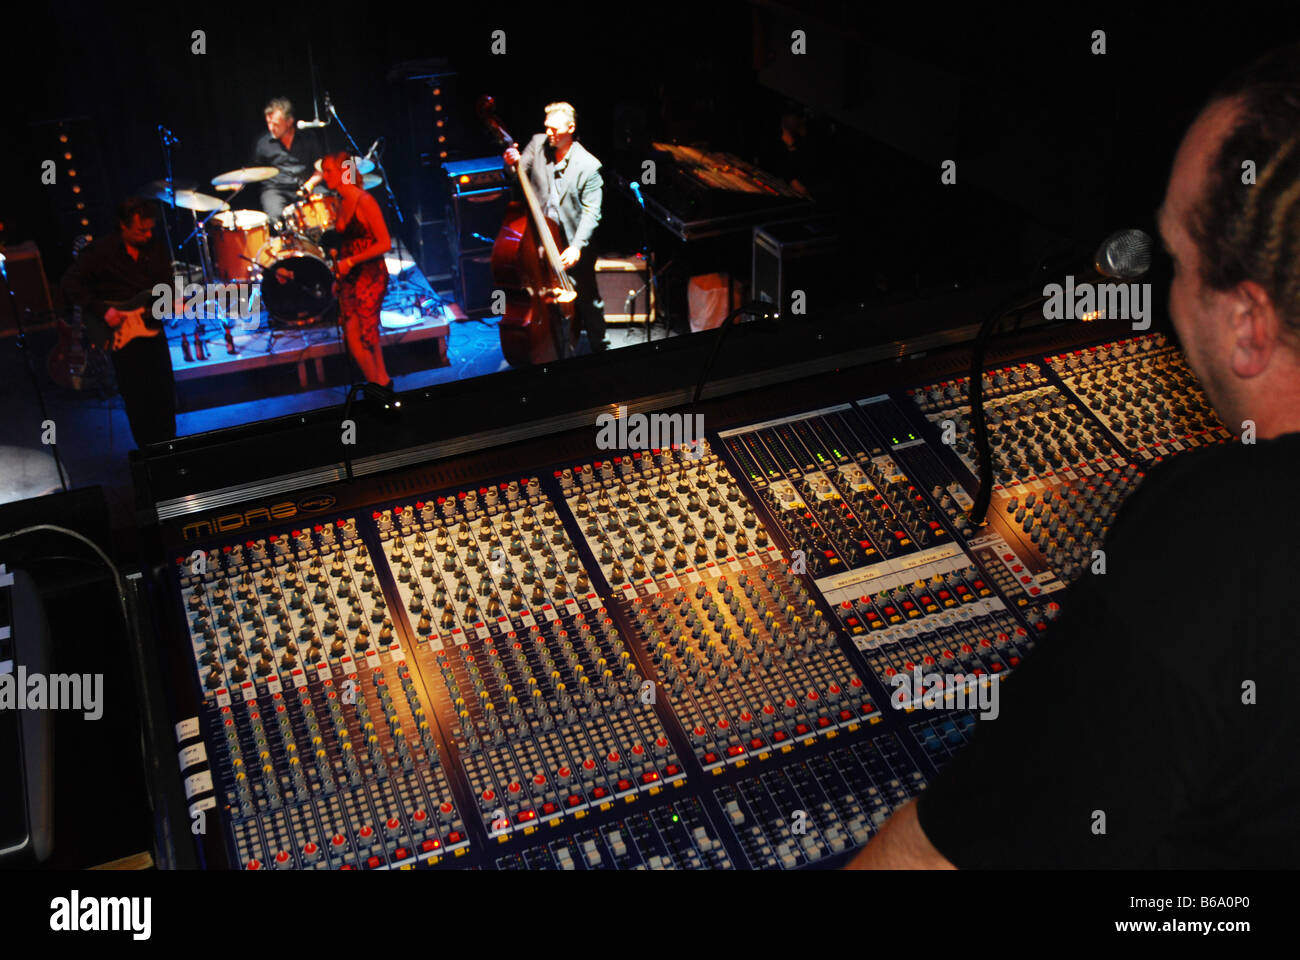 Sound Technician At Work At Rock Concert Stock Photo